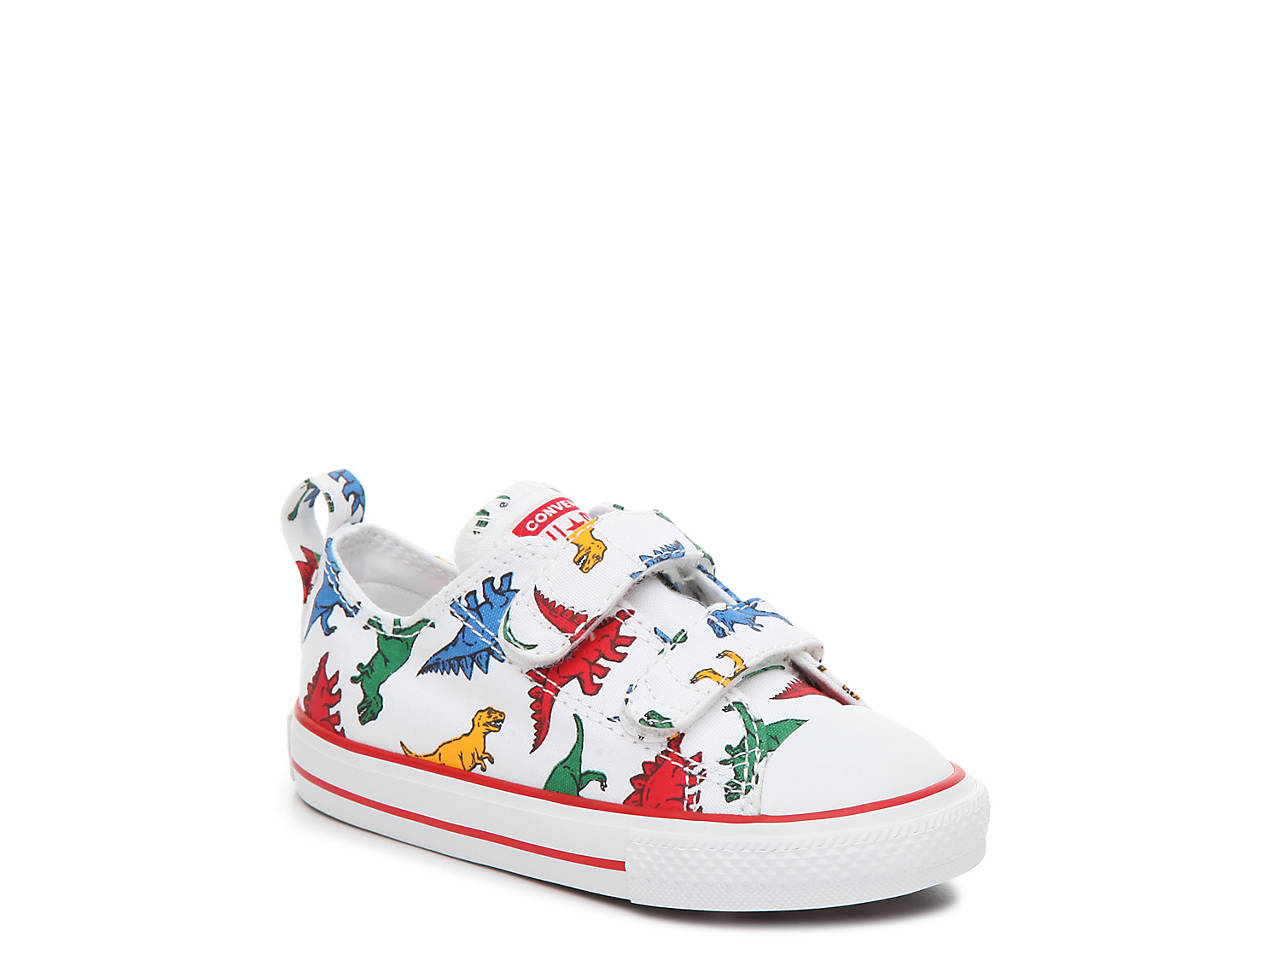 f175058650a3 Converse Chuck Taylor All Star 2V Infant   Toddler Sneaker Kids ...